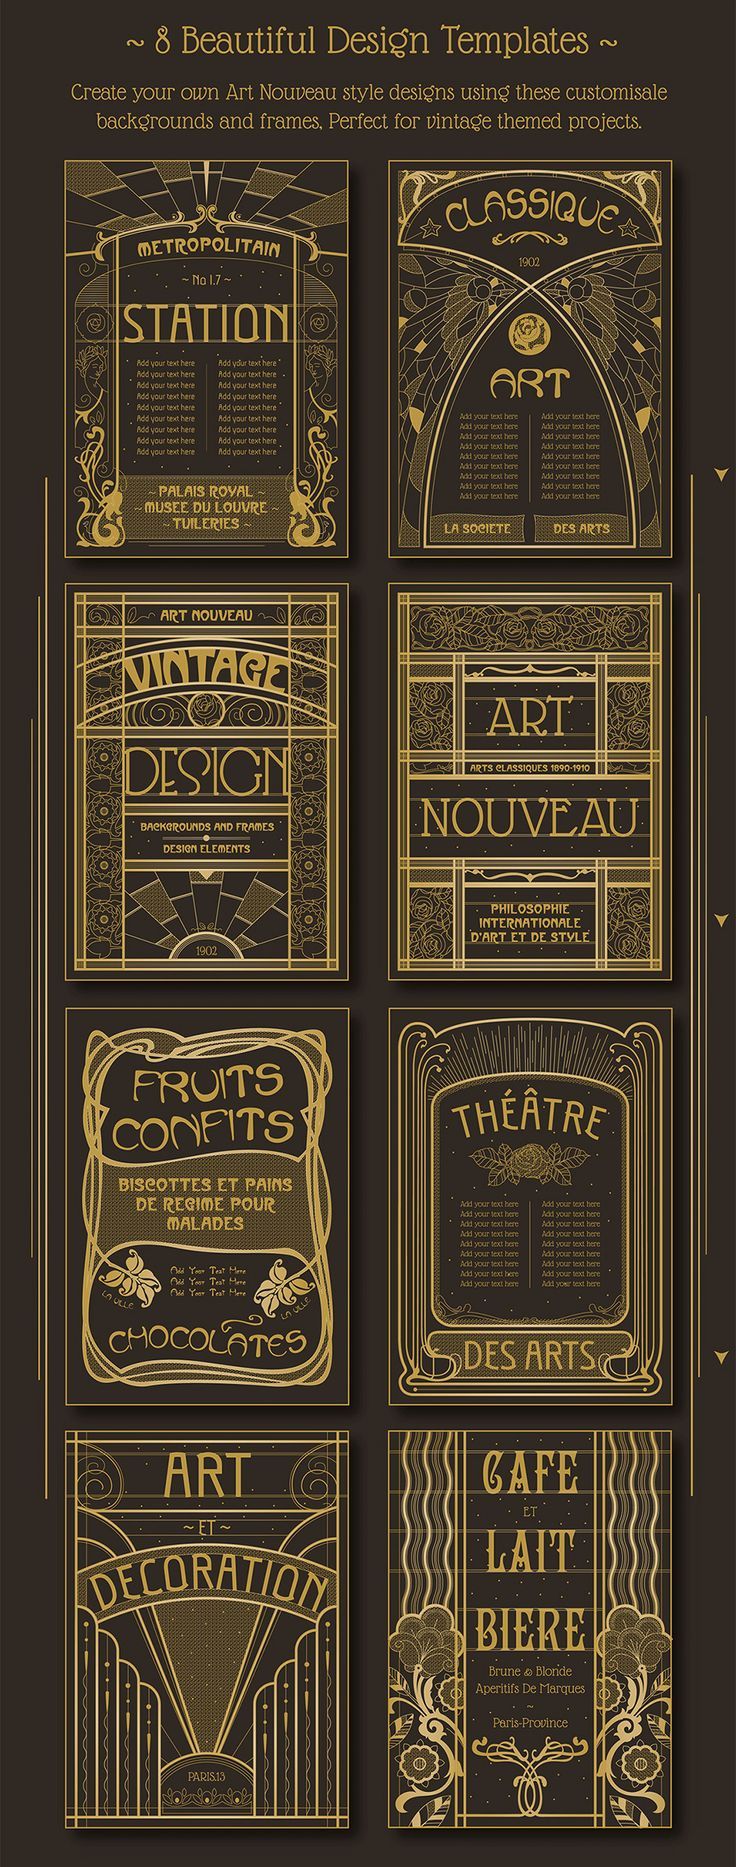 Art Nouveau Backgrounds -  https://www.designcuts.com/product/art-nouveau-backgrounds/